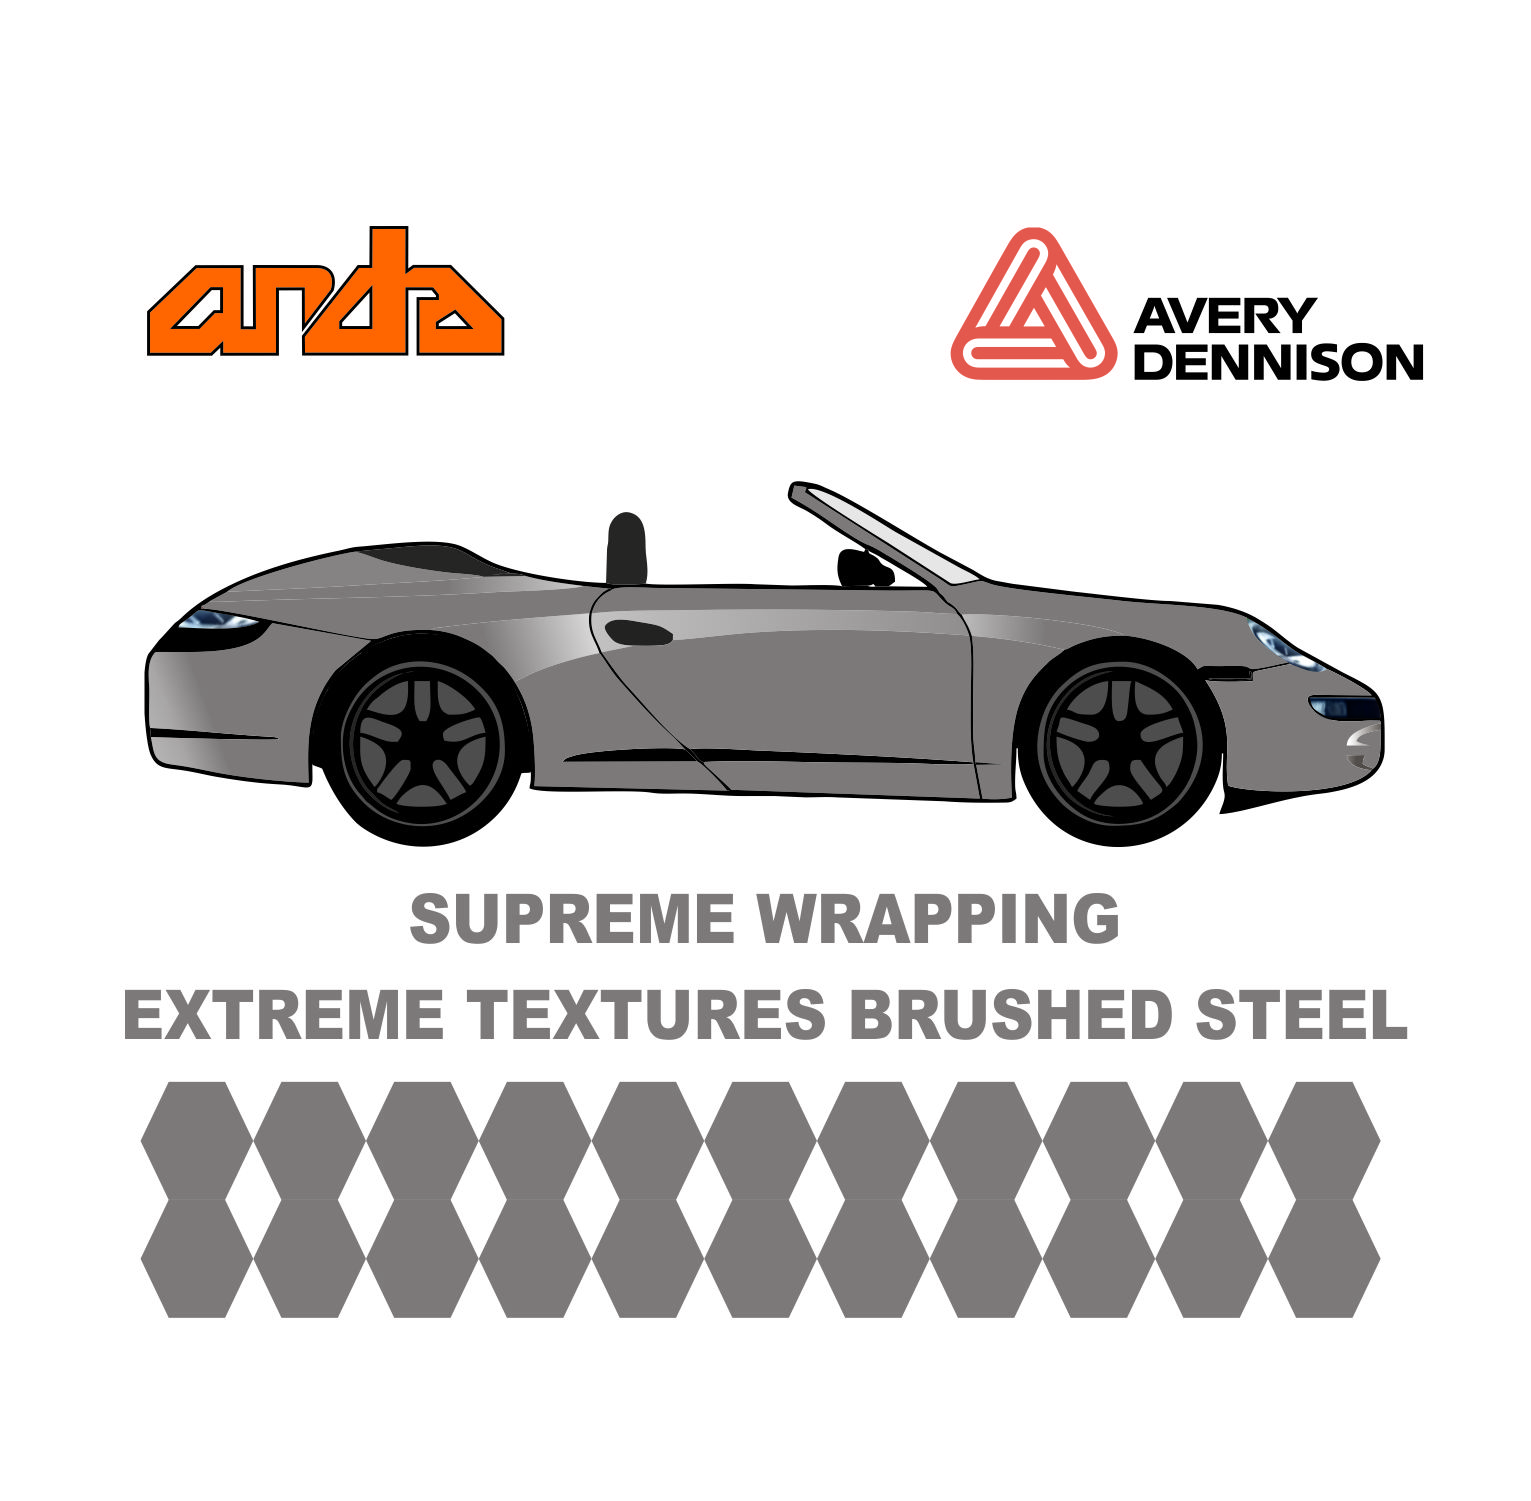 Avery Dennison- SWF Extreme Textures Brushed Steel 1